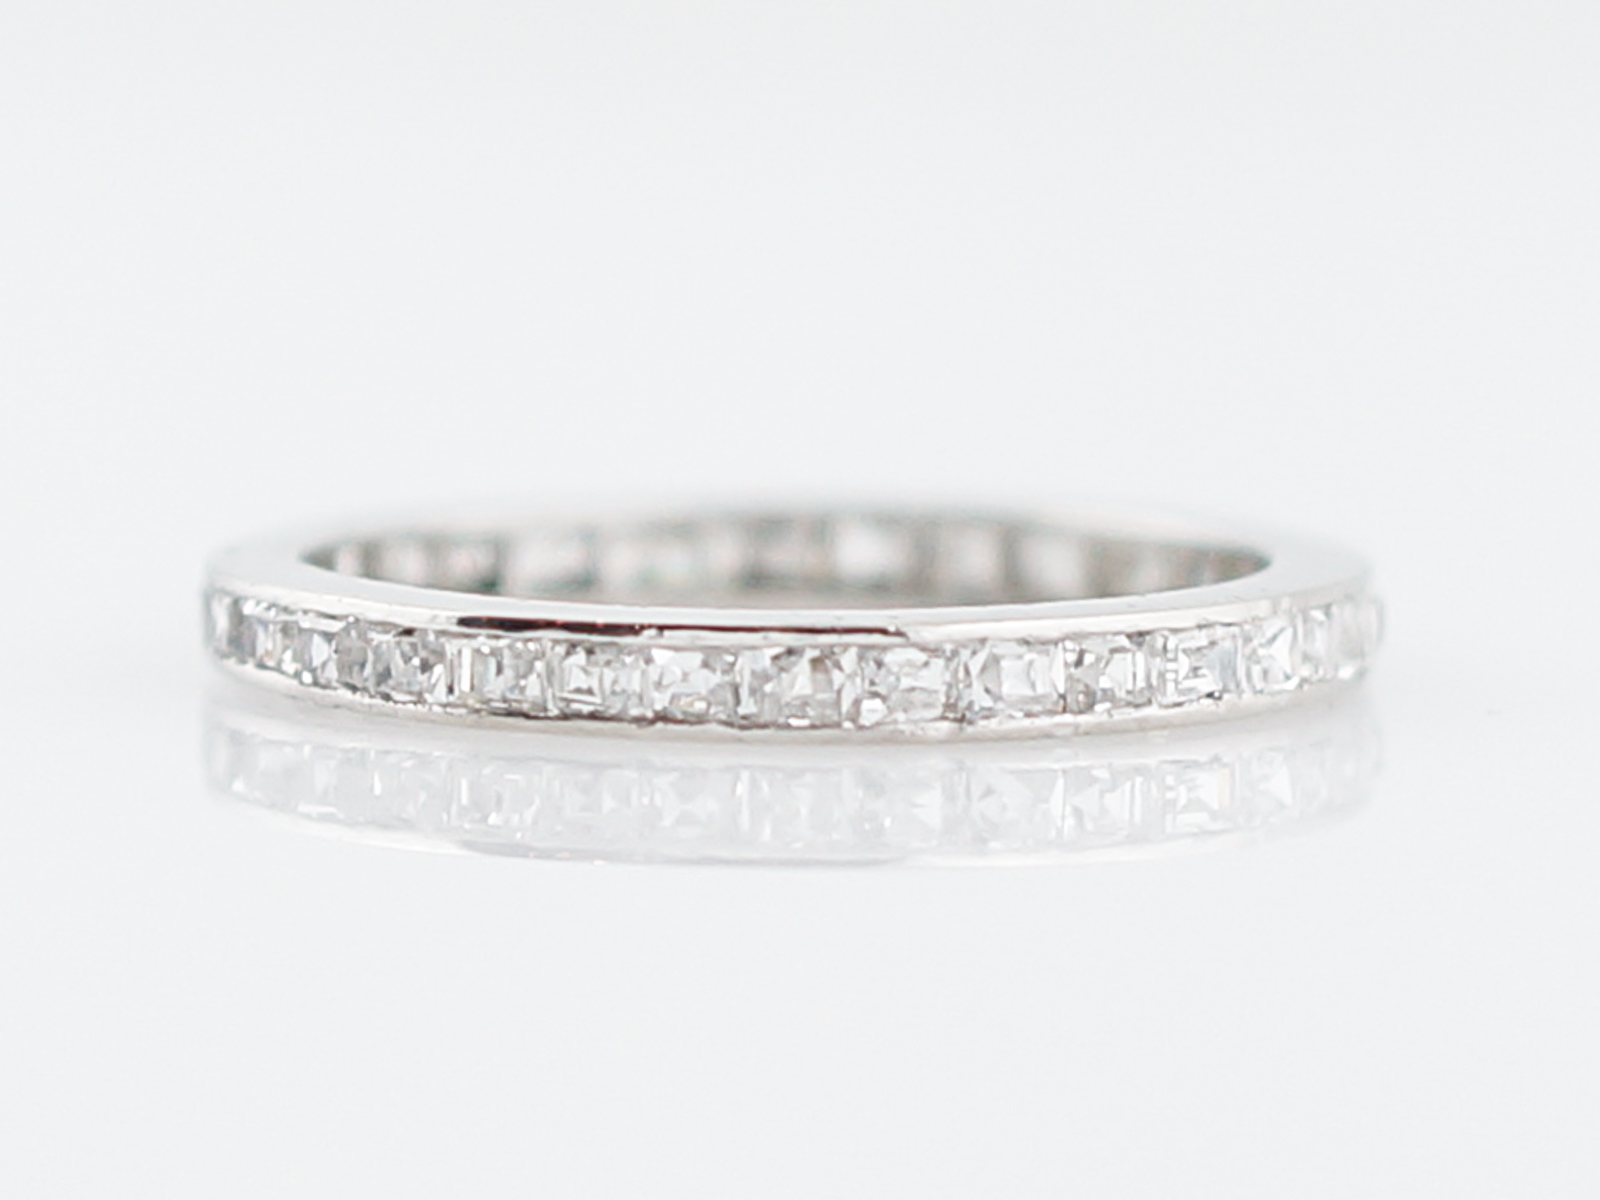 Antique Eternity Band Art Deco 66 Step French Cut Diamonds In Platinum 1